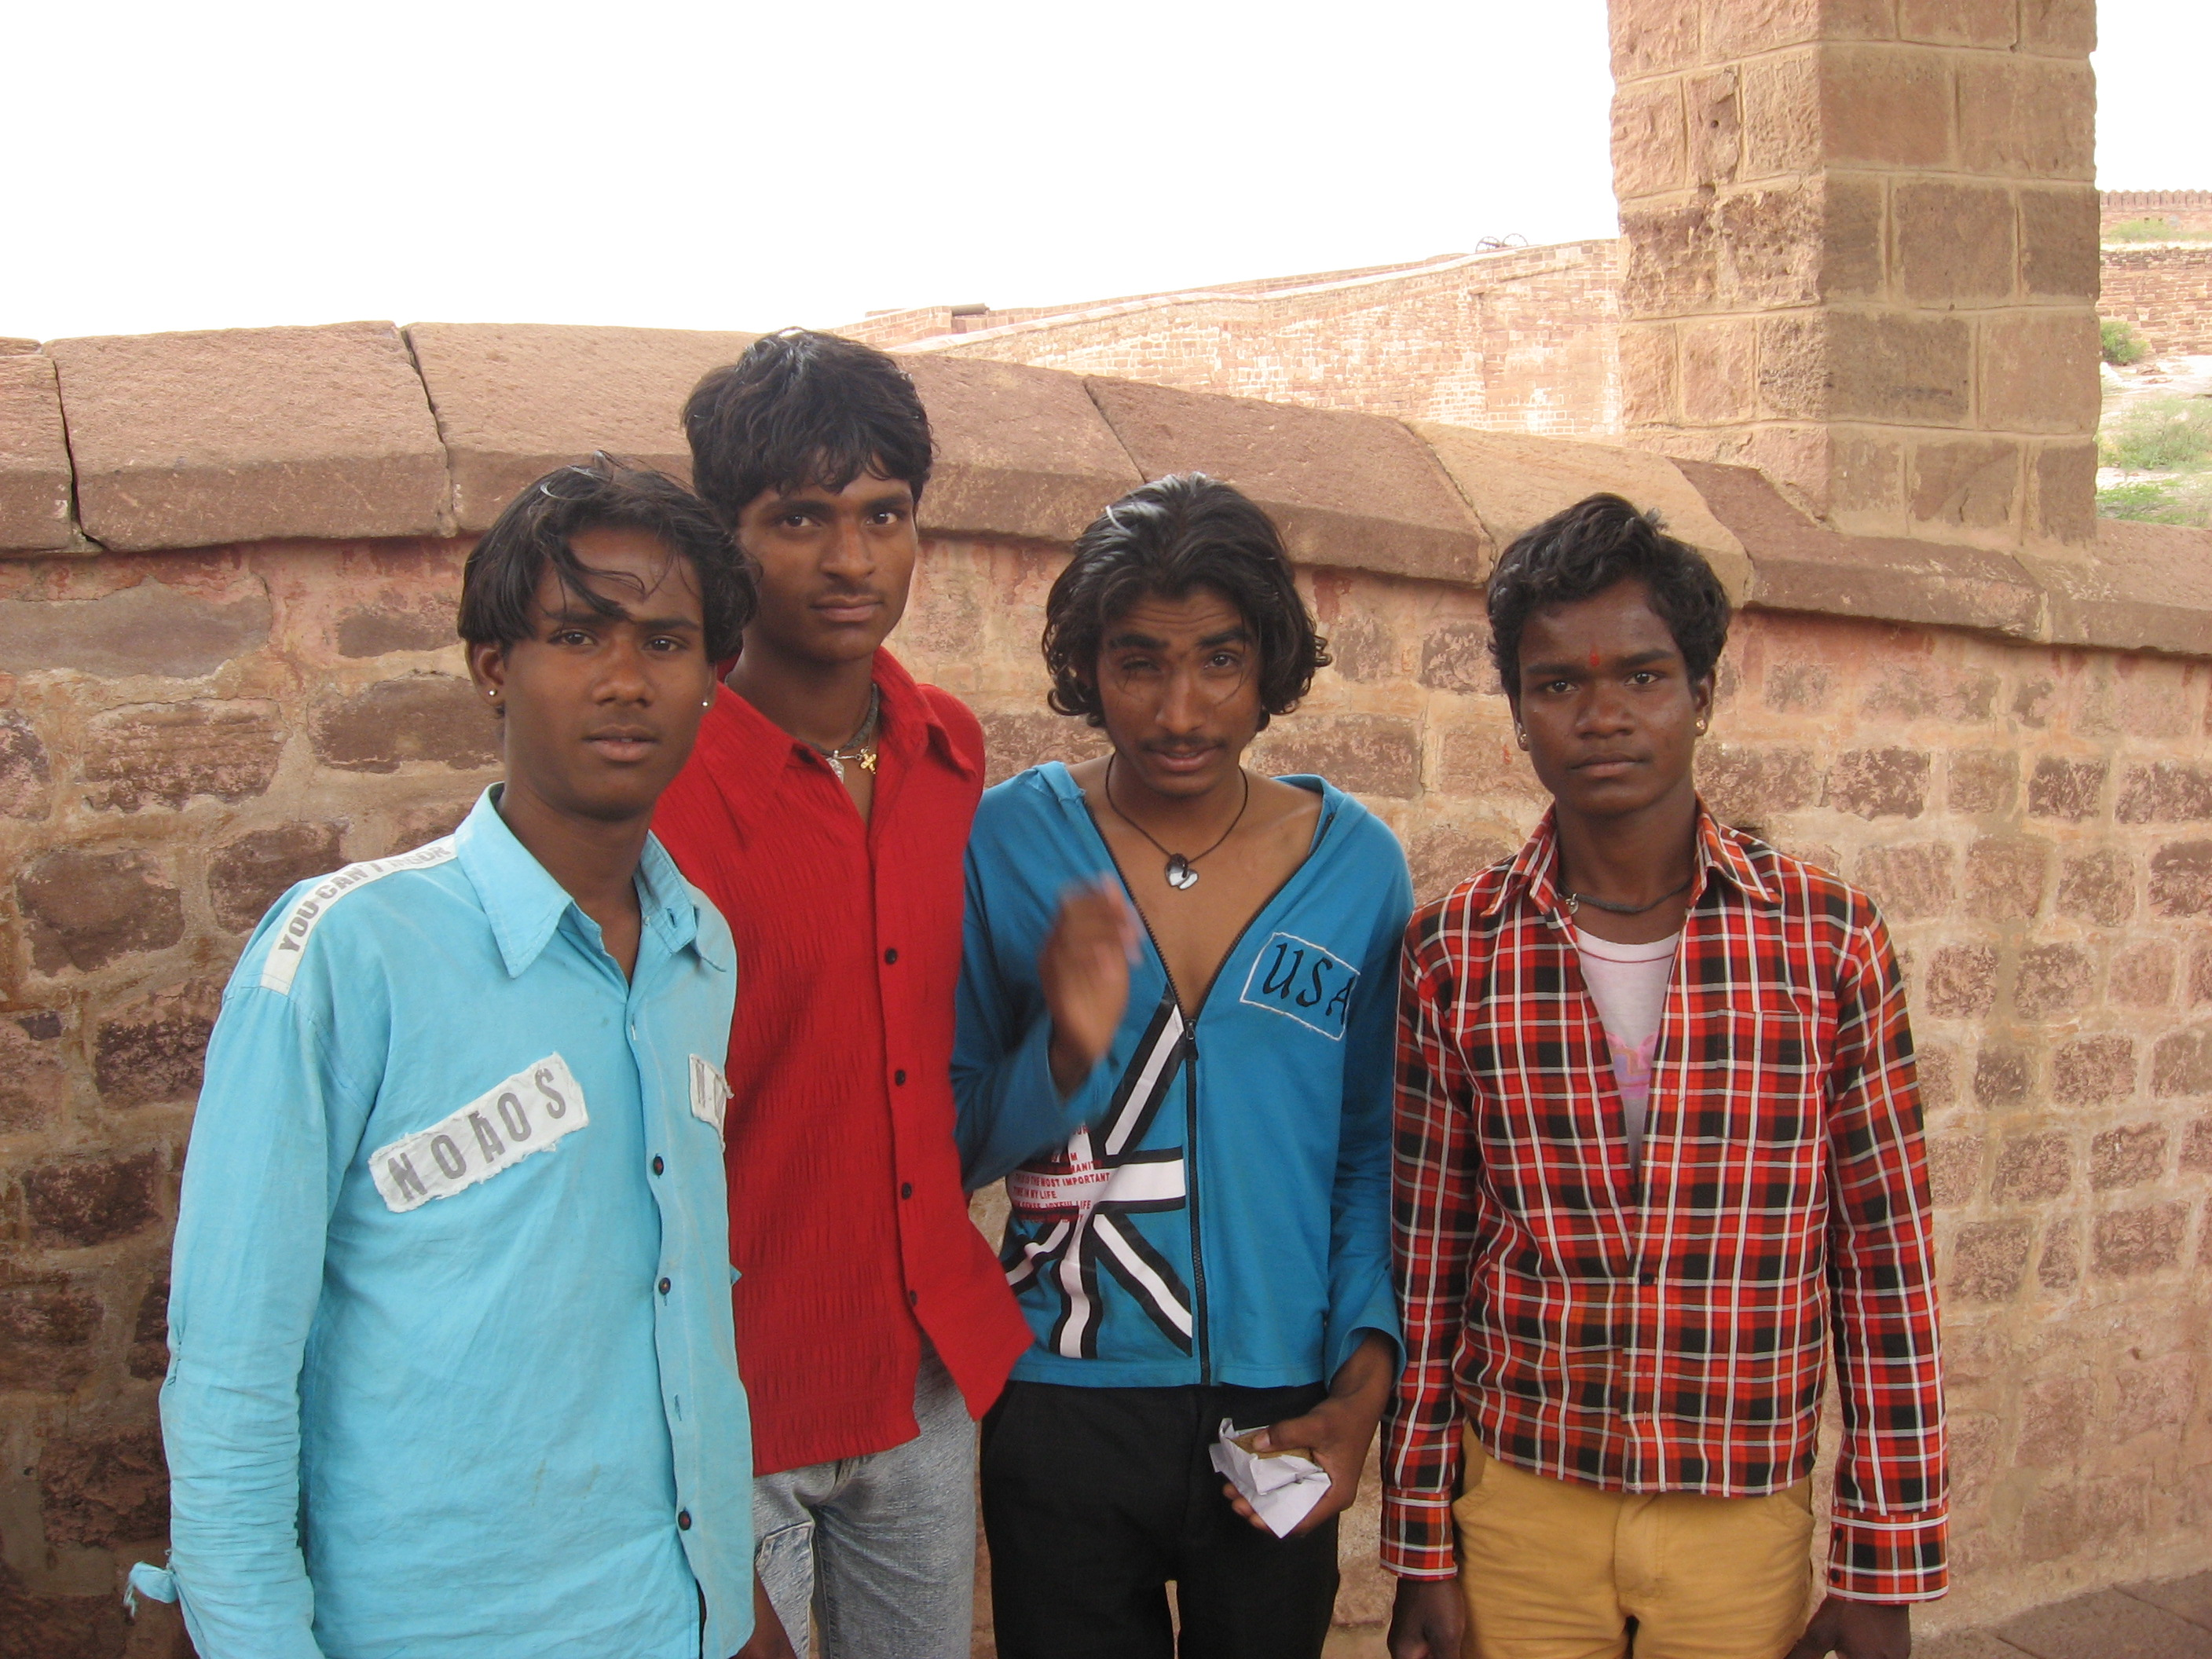 Jodhpur people